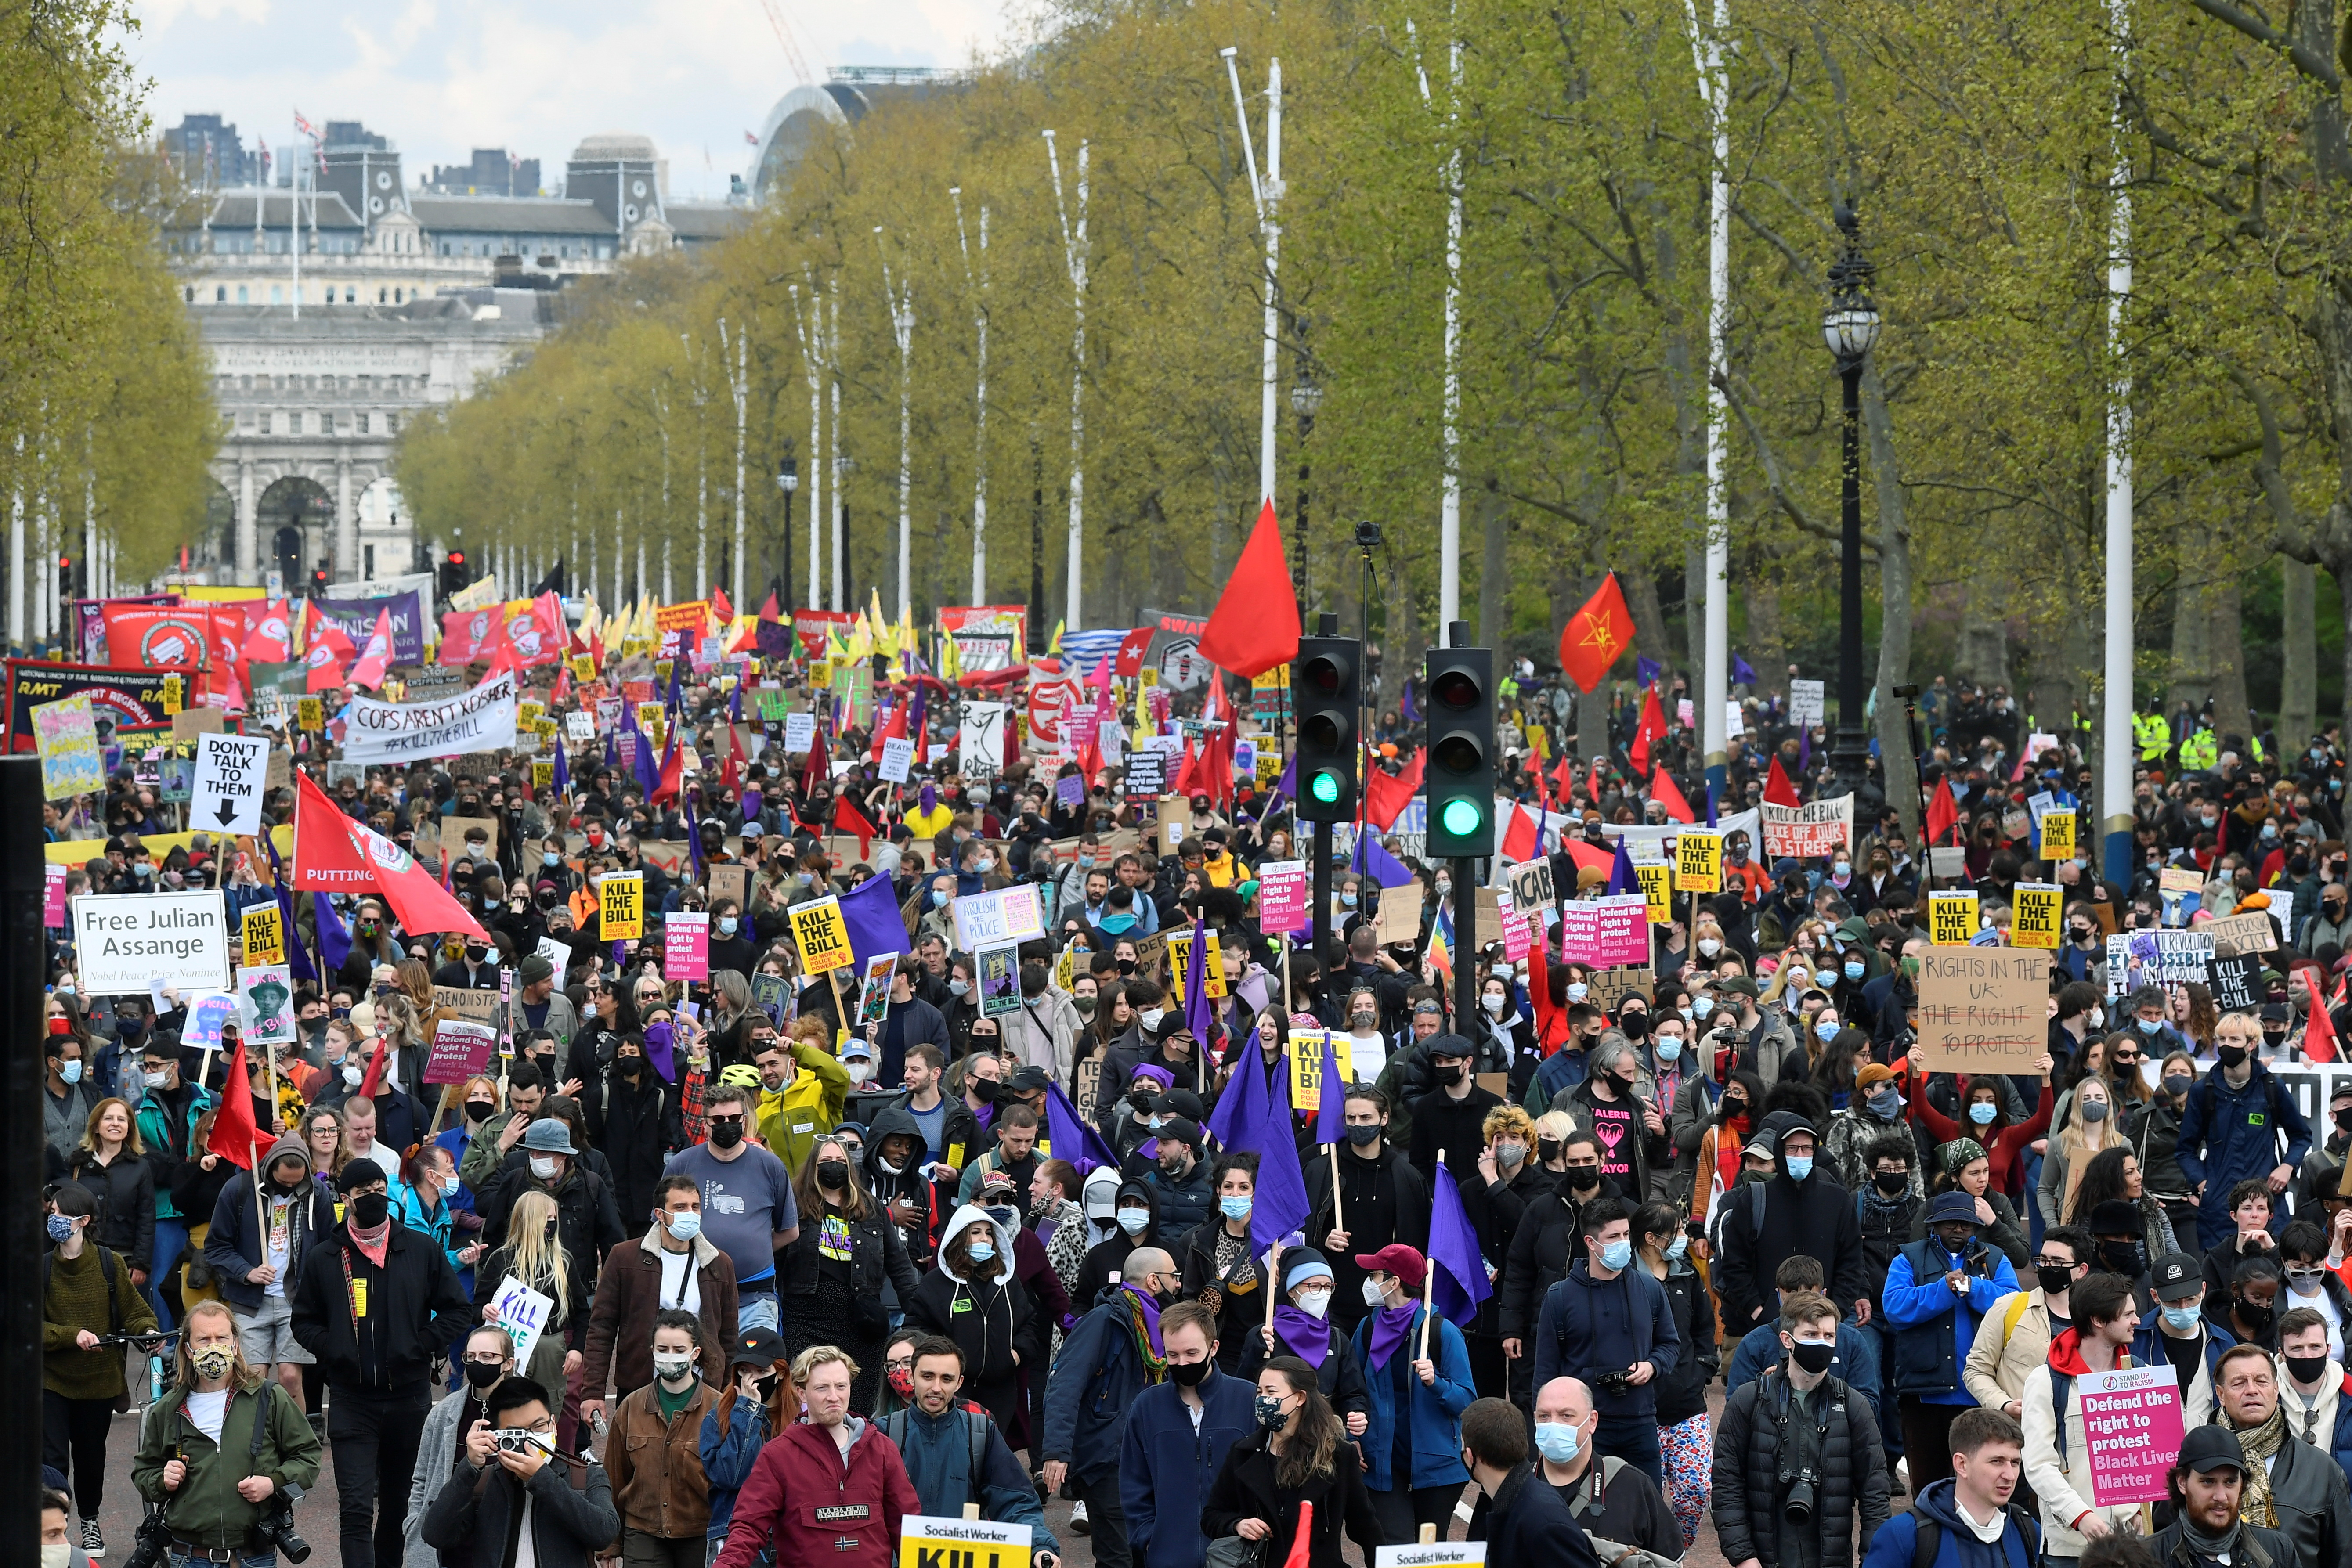 """Demonstrators march during a """"Kill the Bill"""" protest  in London, Britain, May 1, 2021. REUTERS/Toby Melville"""